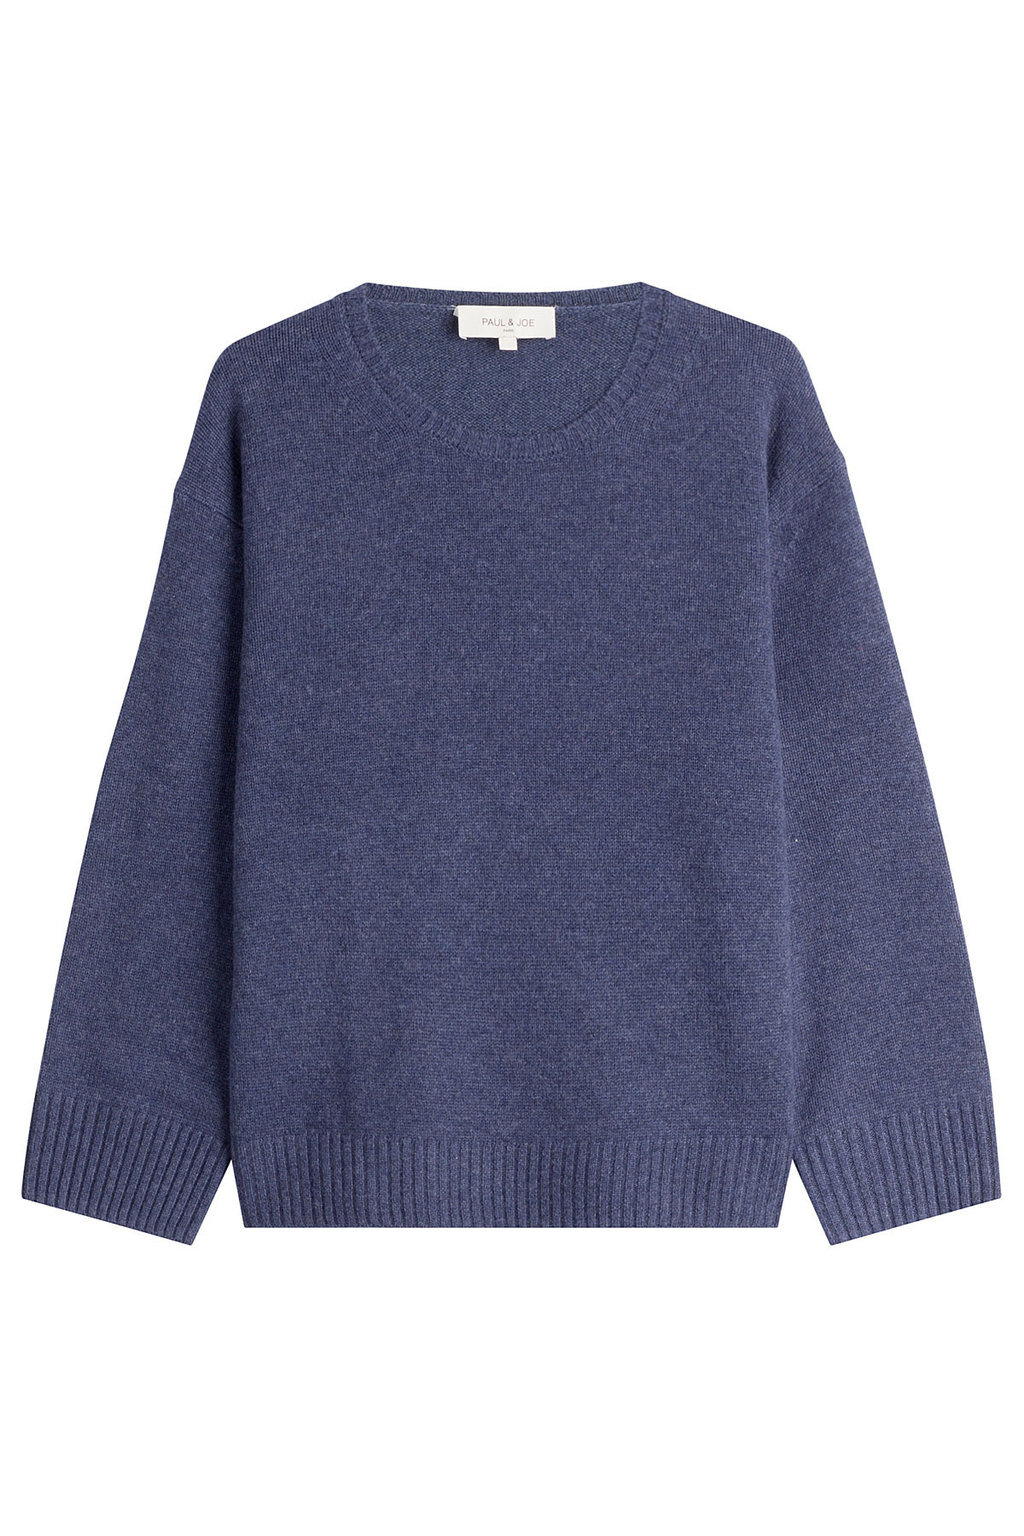 Cashmere Pullover - pattern: plain; style: standard; predominant colour: navy; occasions: casual; length: standard; fit: standard fit; neckline: crew; fibres: cashmere - 100%; sleeve length: long sleeve; sleeve style: standard; texture group: knits/crochet; pattern type: knitted - fine stitch; season: s/s 2016; wardrobe: investment